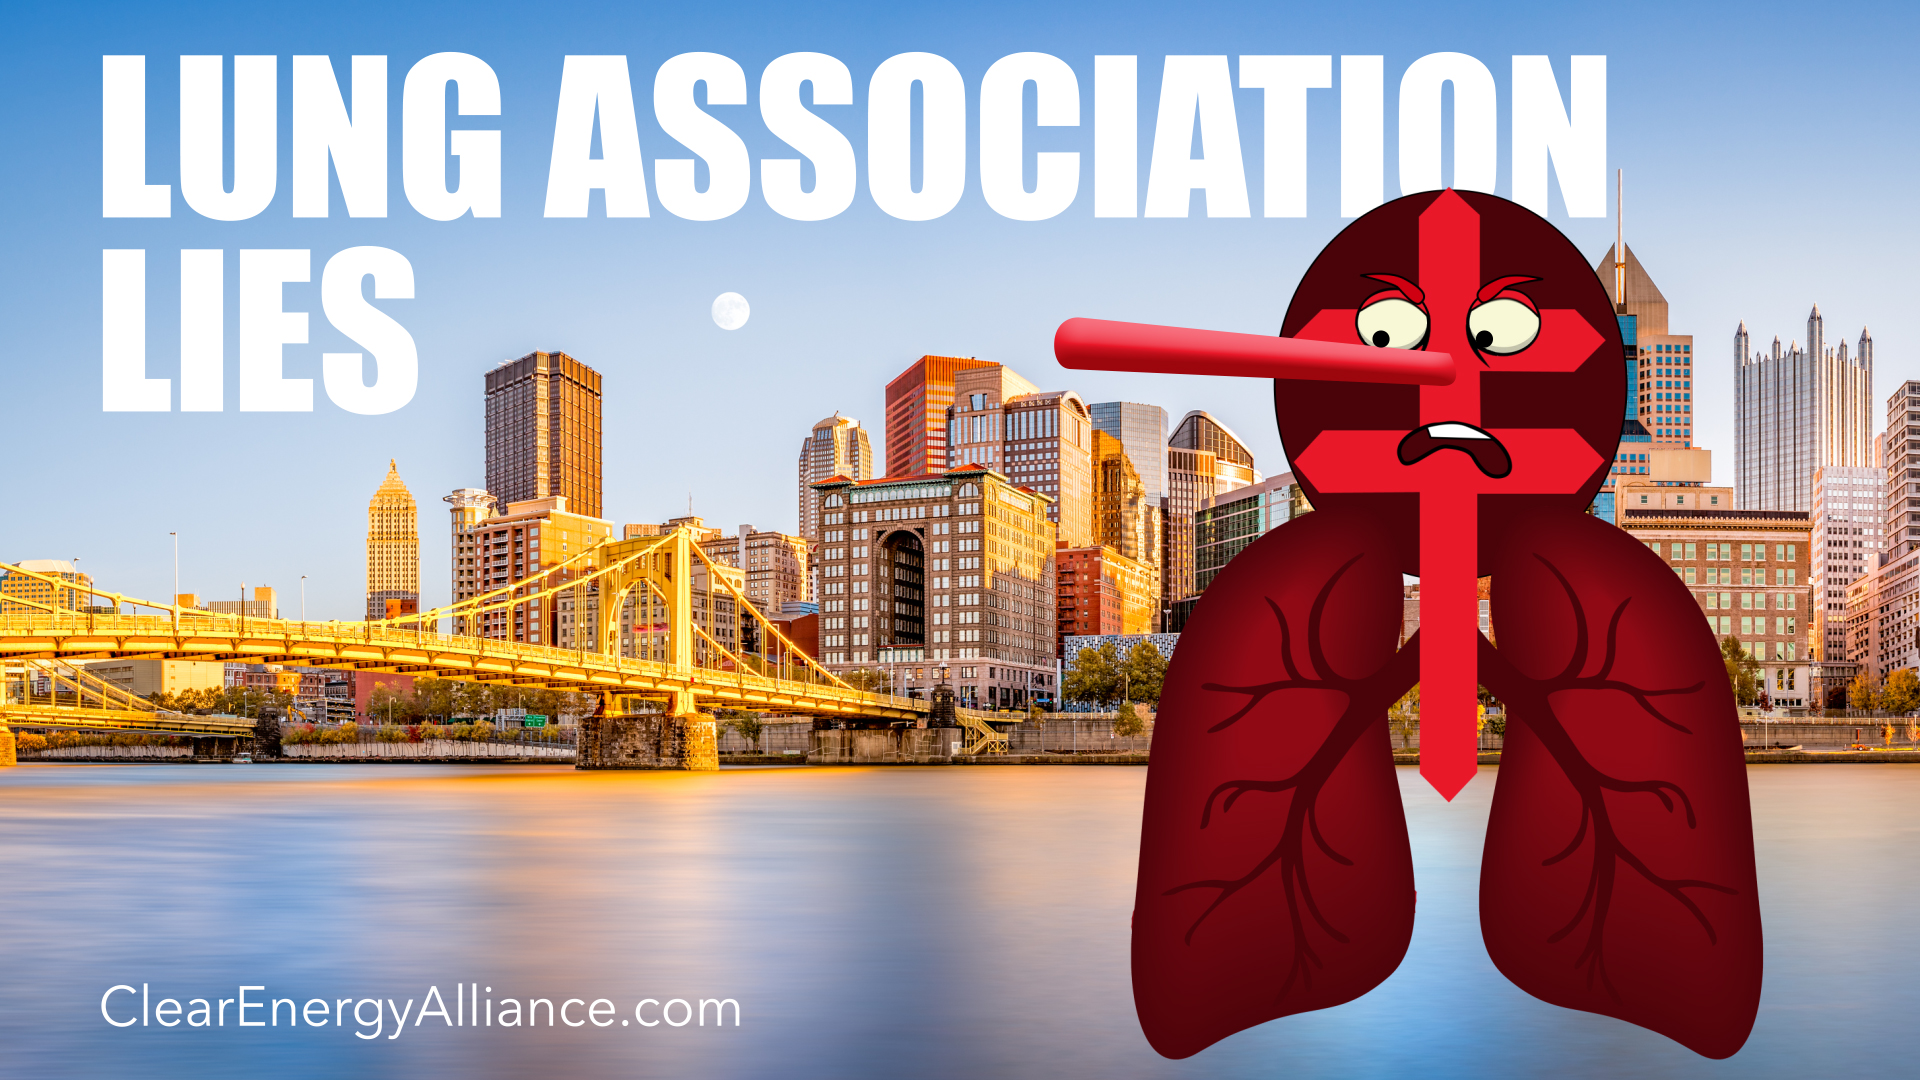 Lung Association Lies